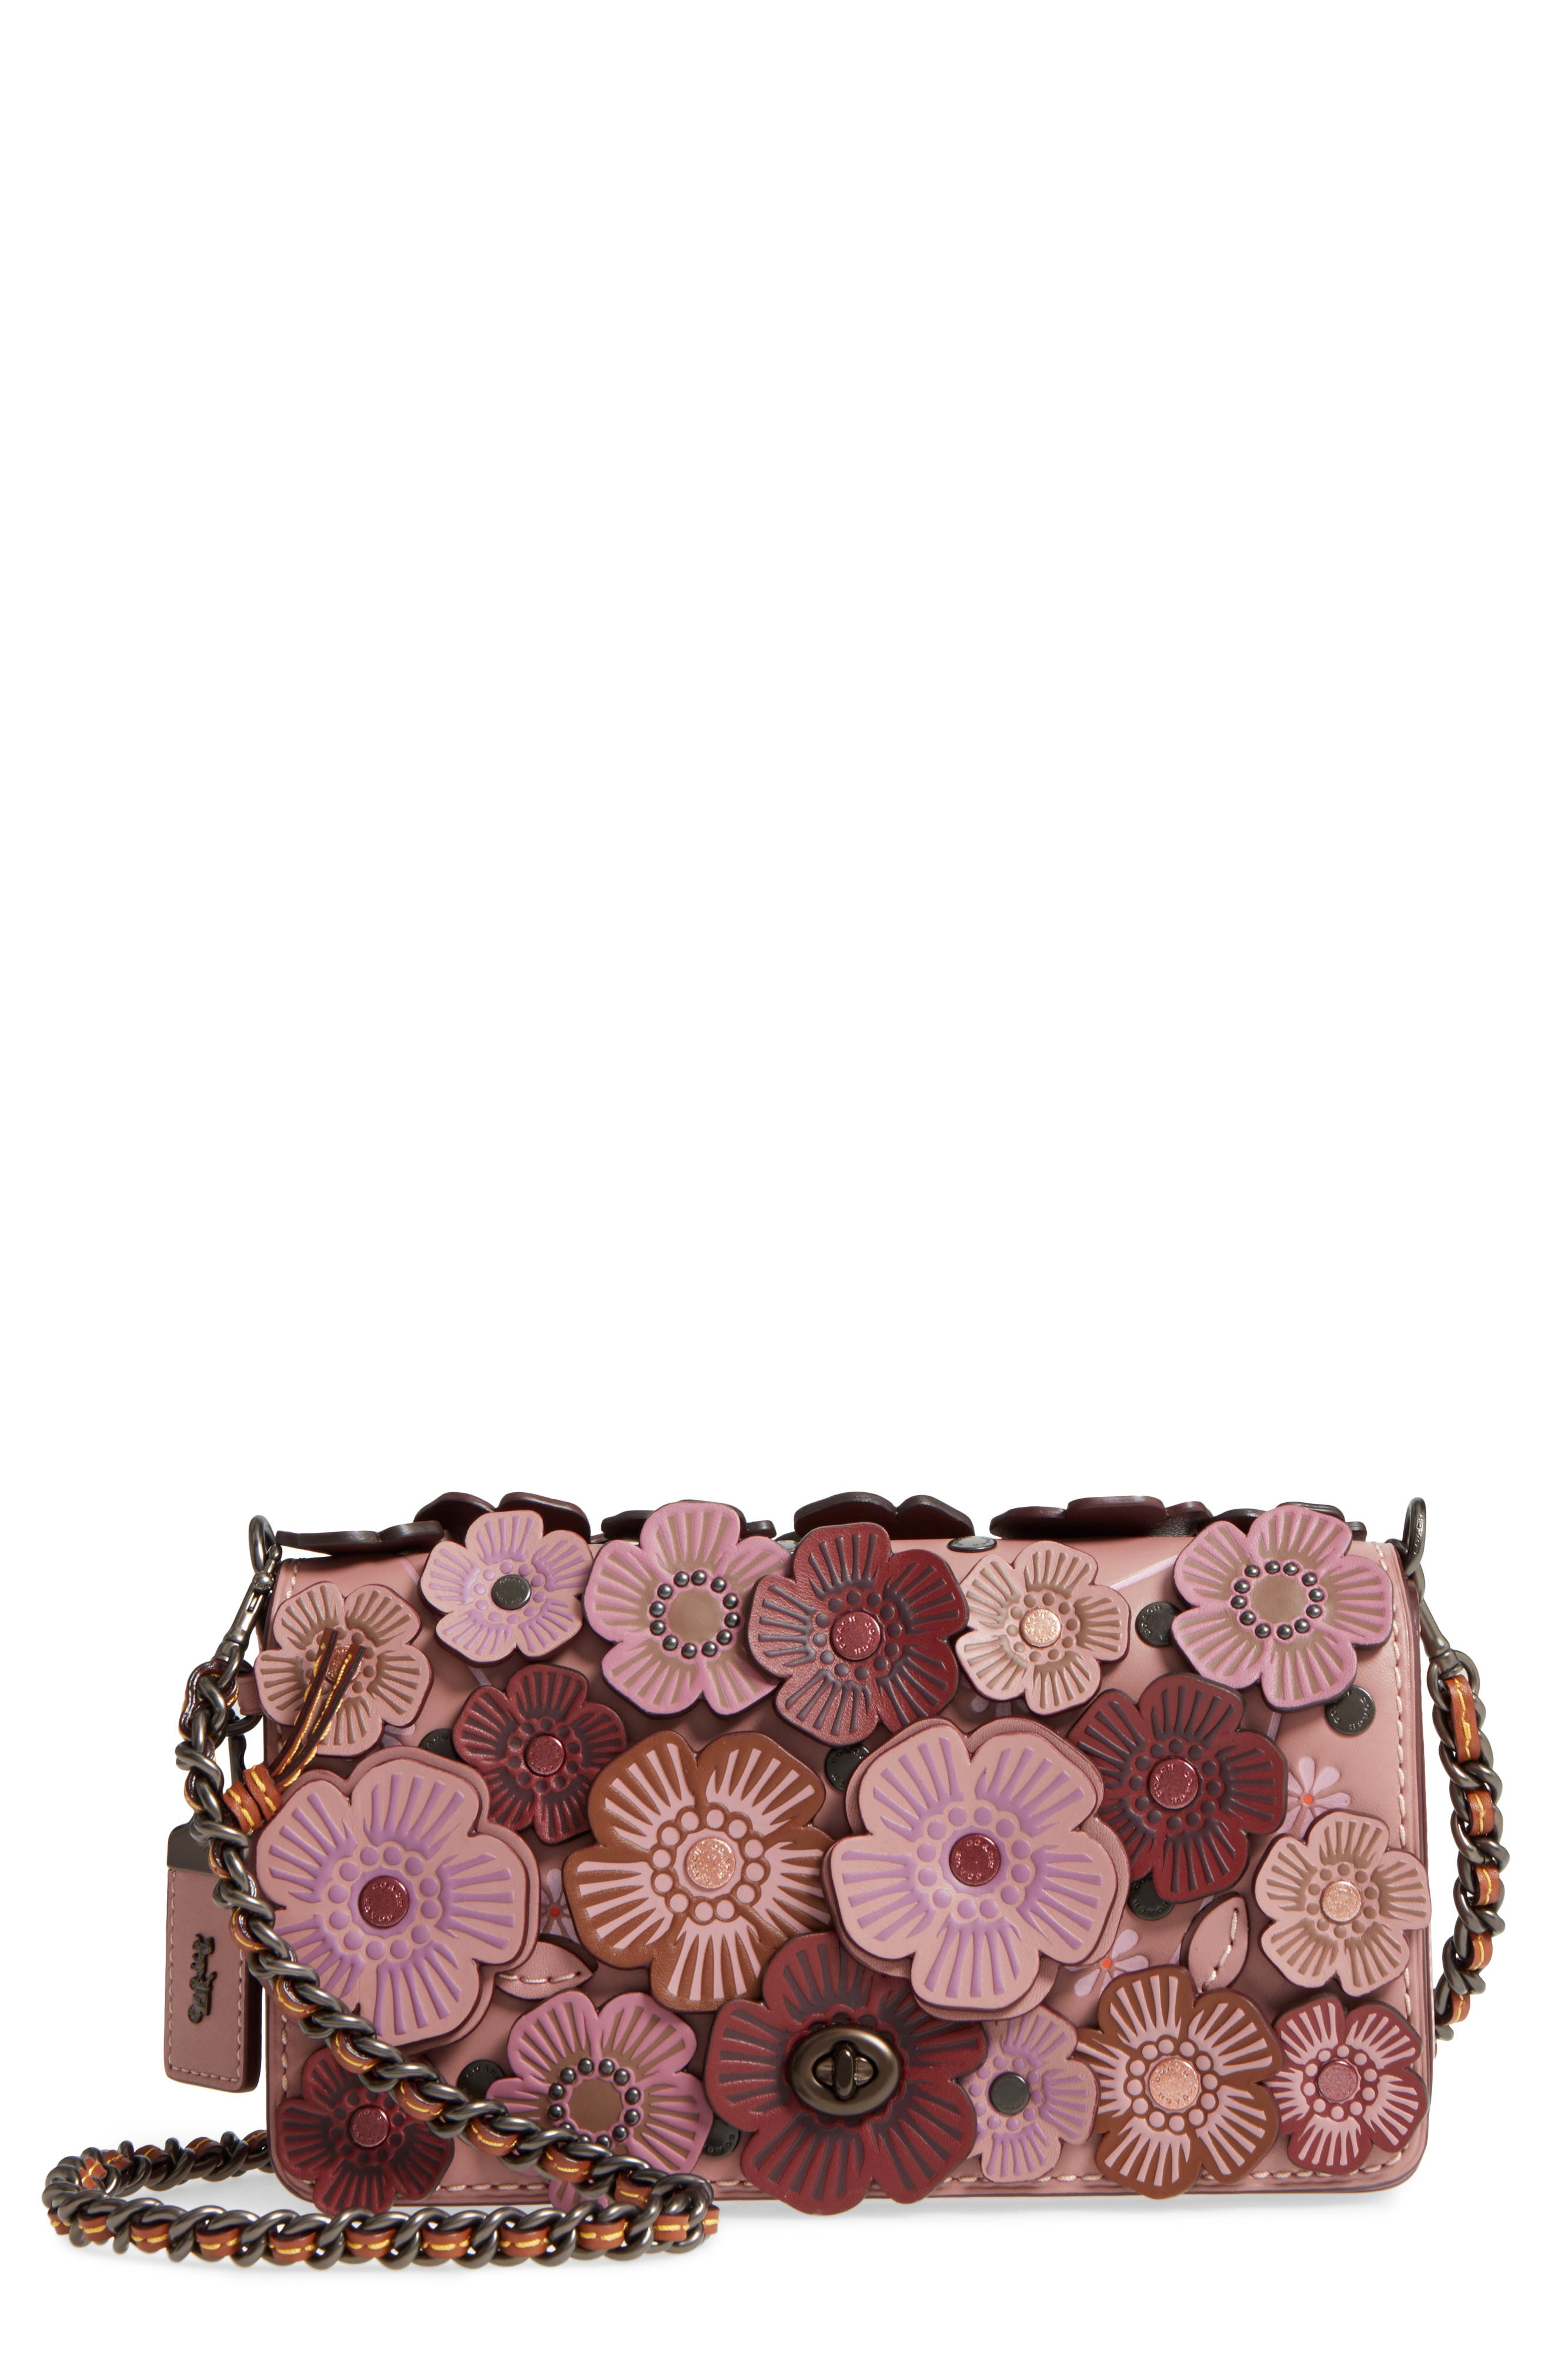 Alternate Image 1 Selected - COACH 1941 'Dinky' Flower Appliqué Leather Crossbody Bag